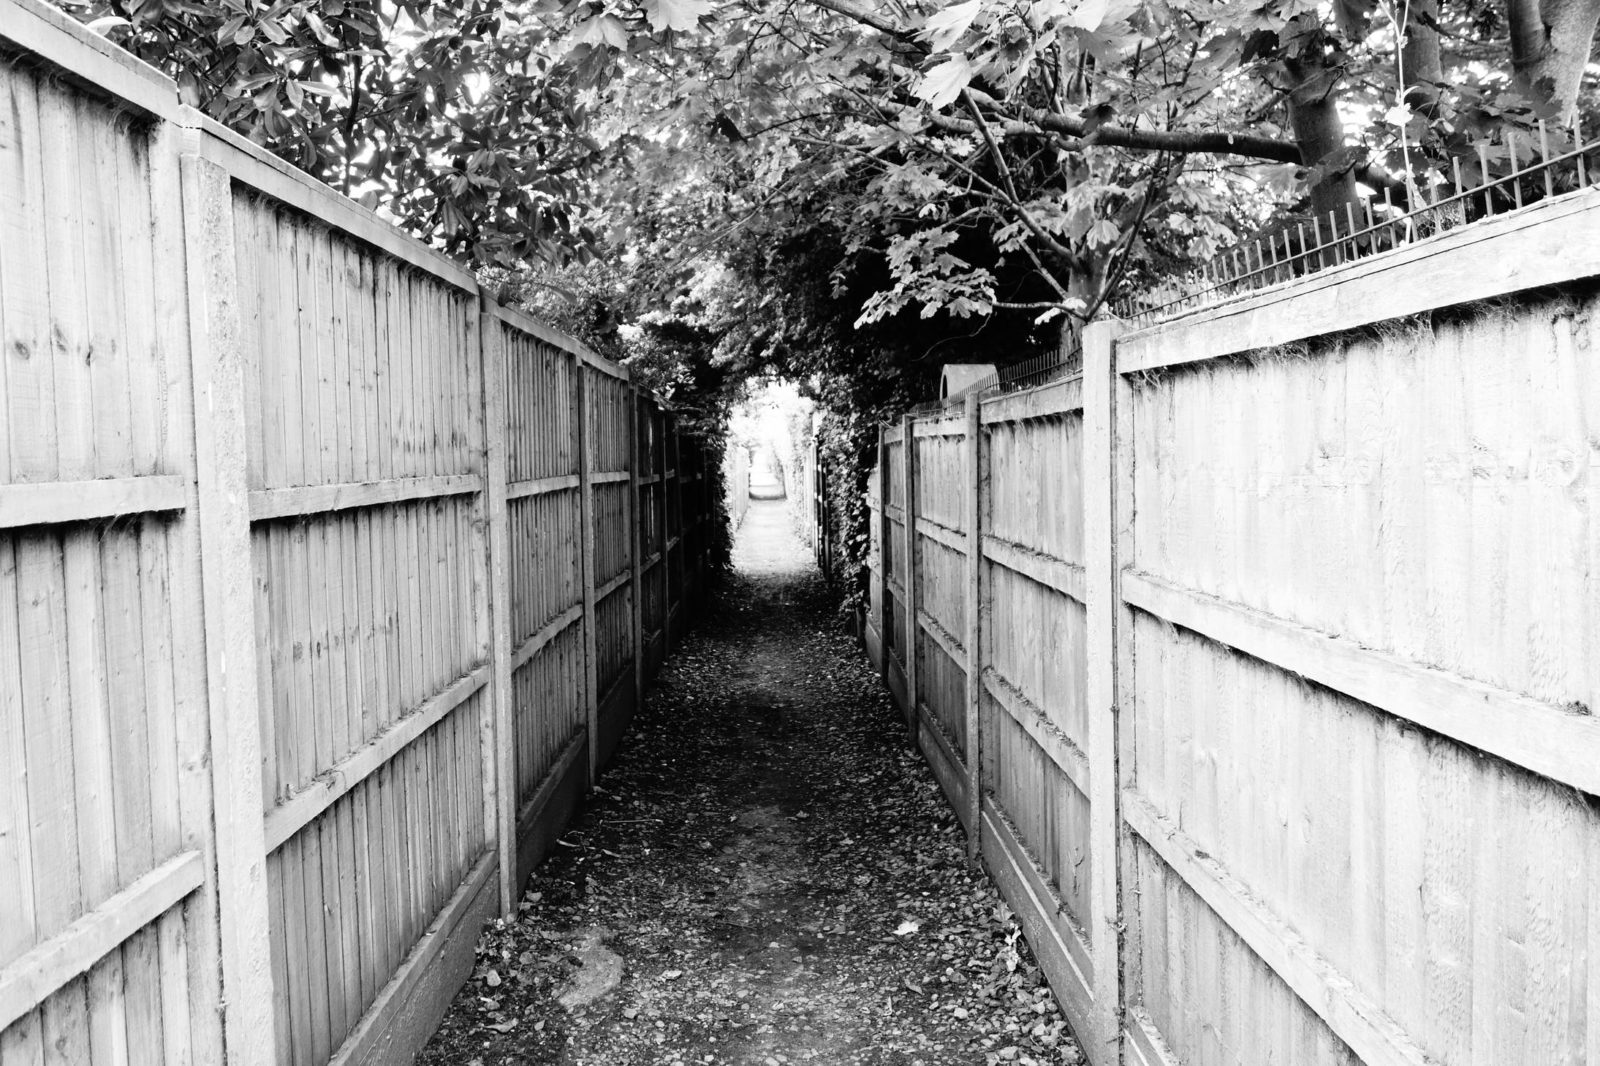 Fenced alleyway